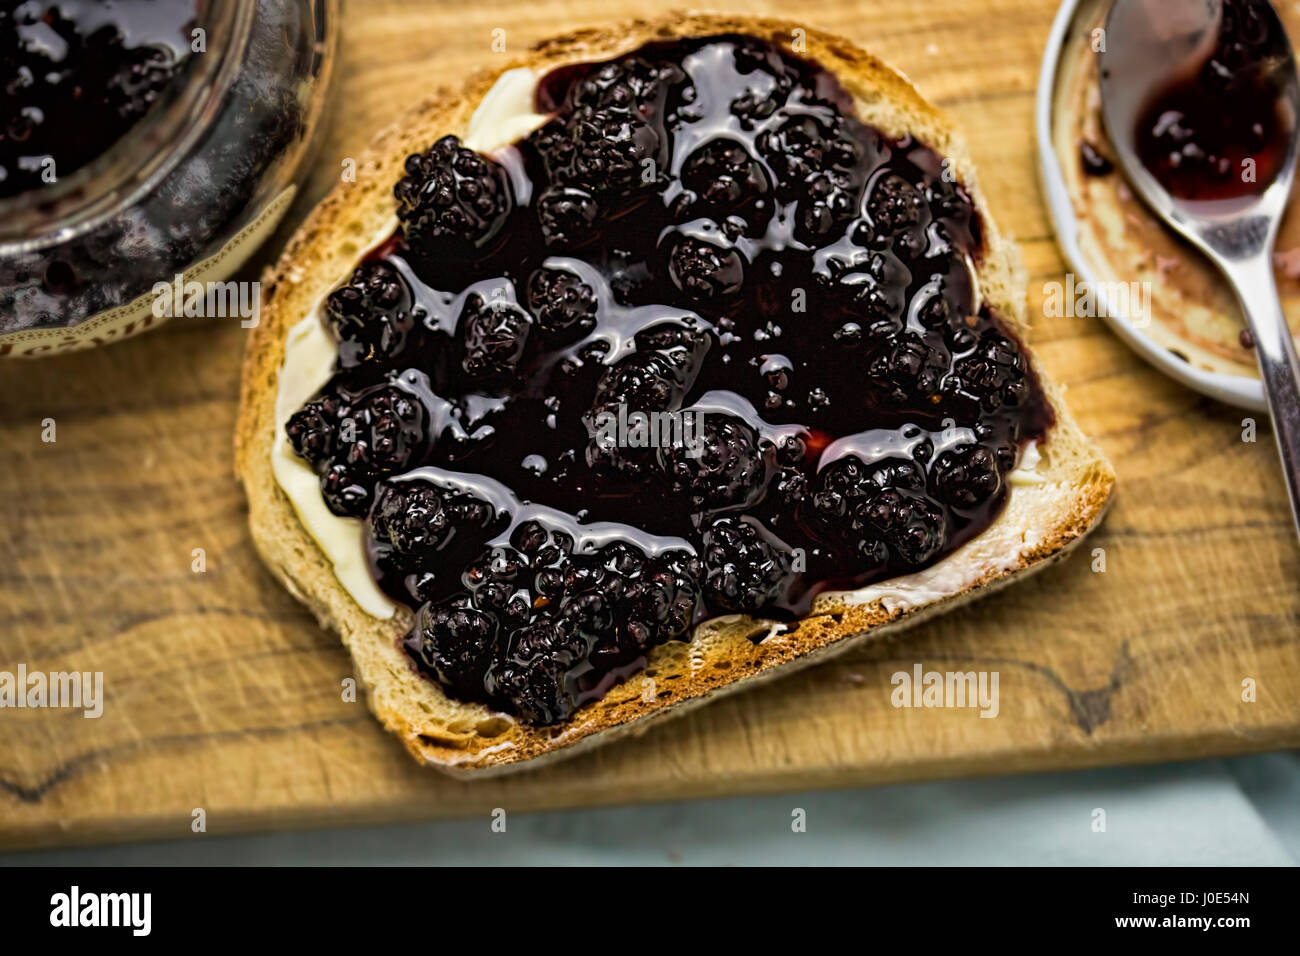 Bread blackberry confiture - Stock Image